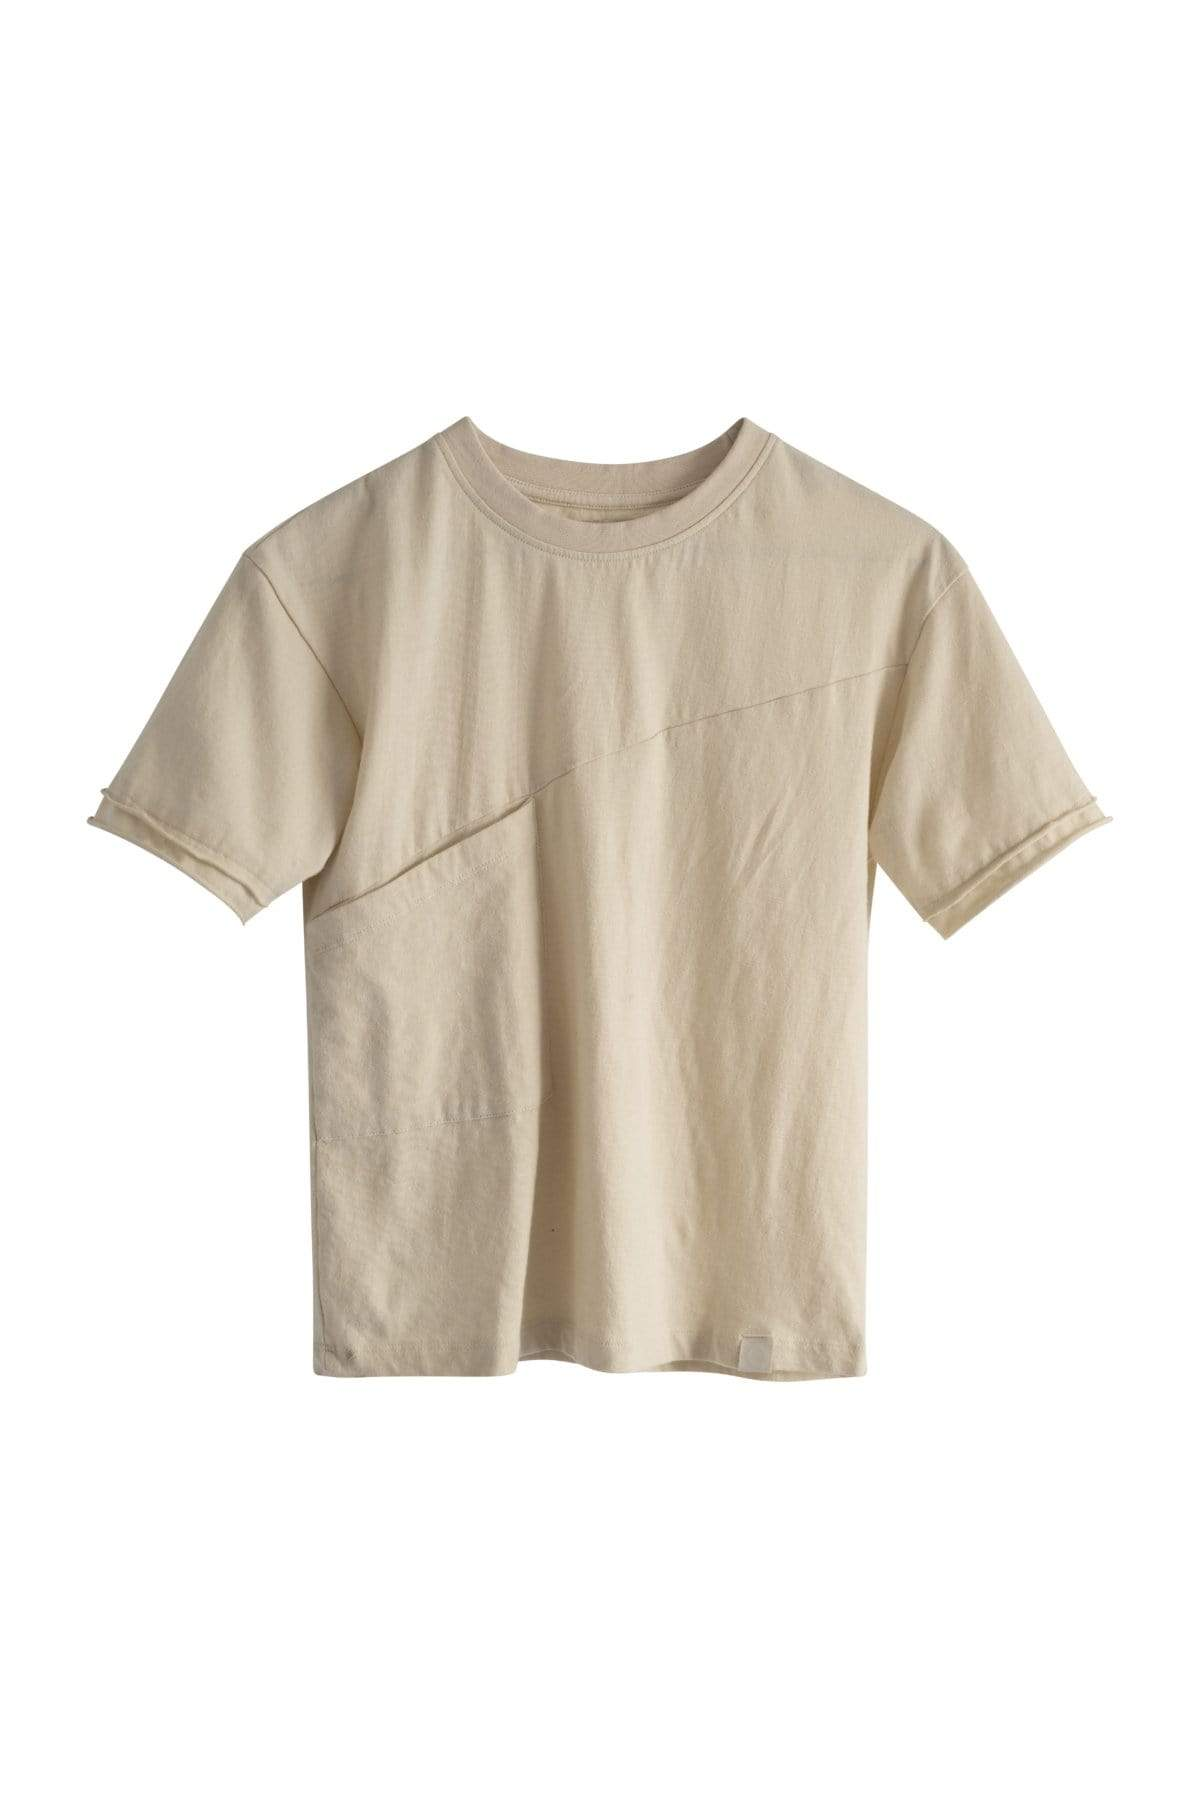 I Dig Denim Loke tee - Off White